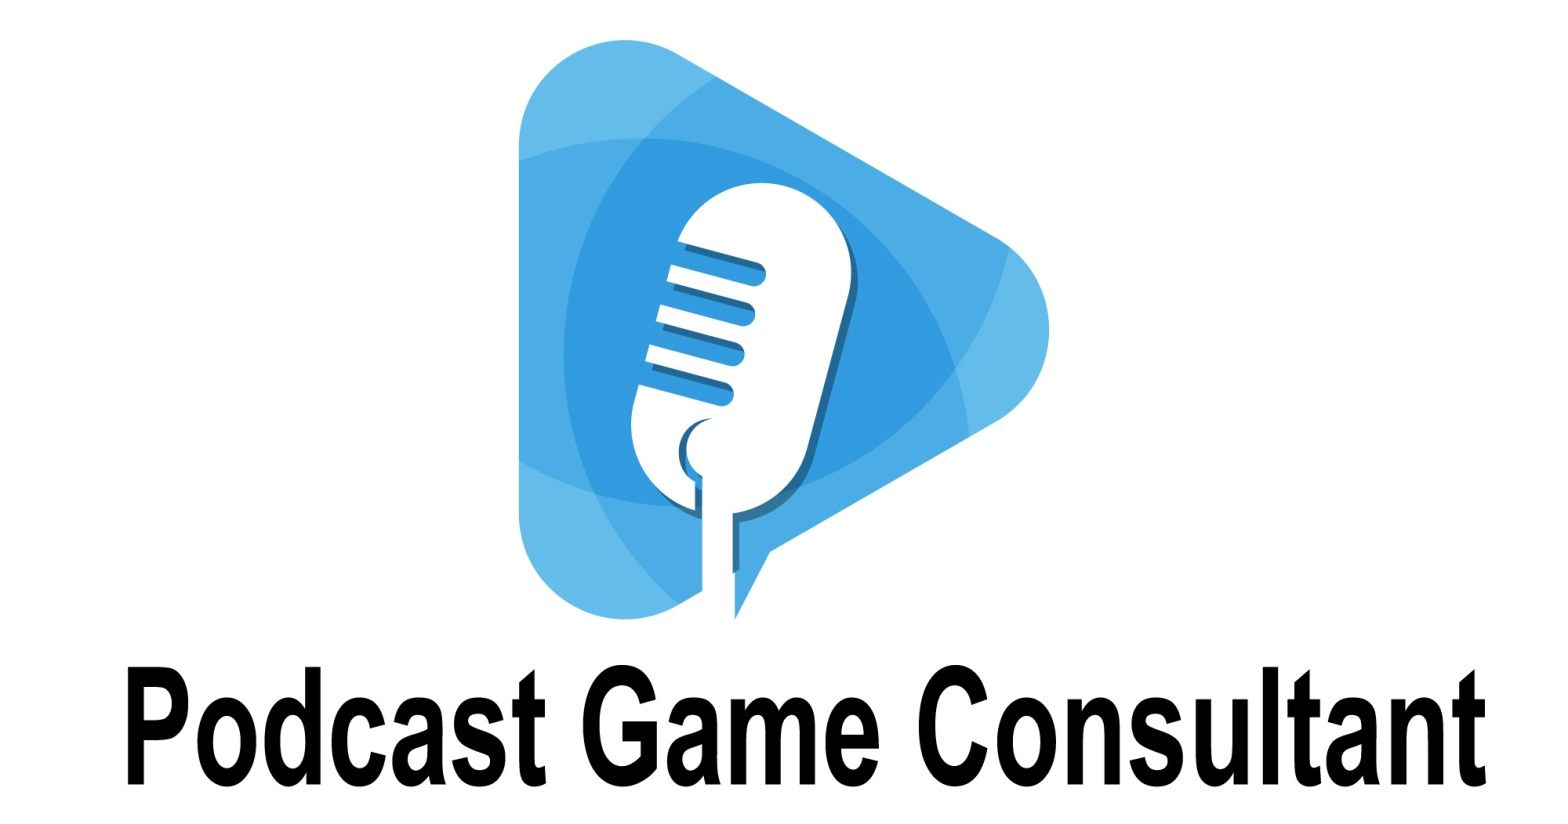 Podcast Game Consultant